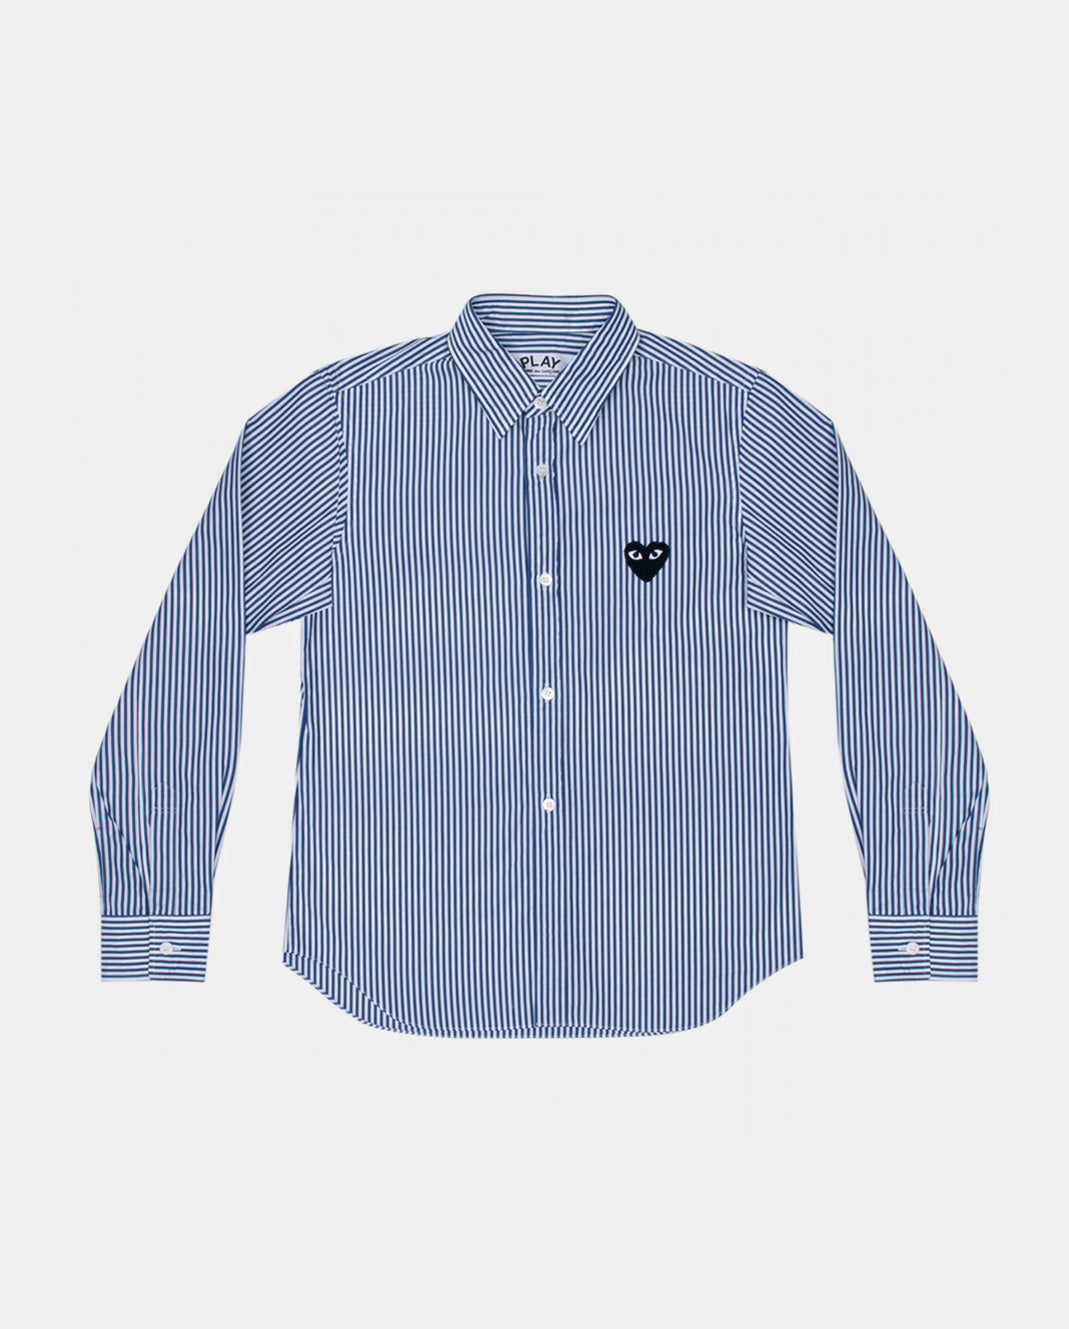 SHIRT B007 / BLUE WHITE STRIPE